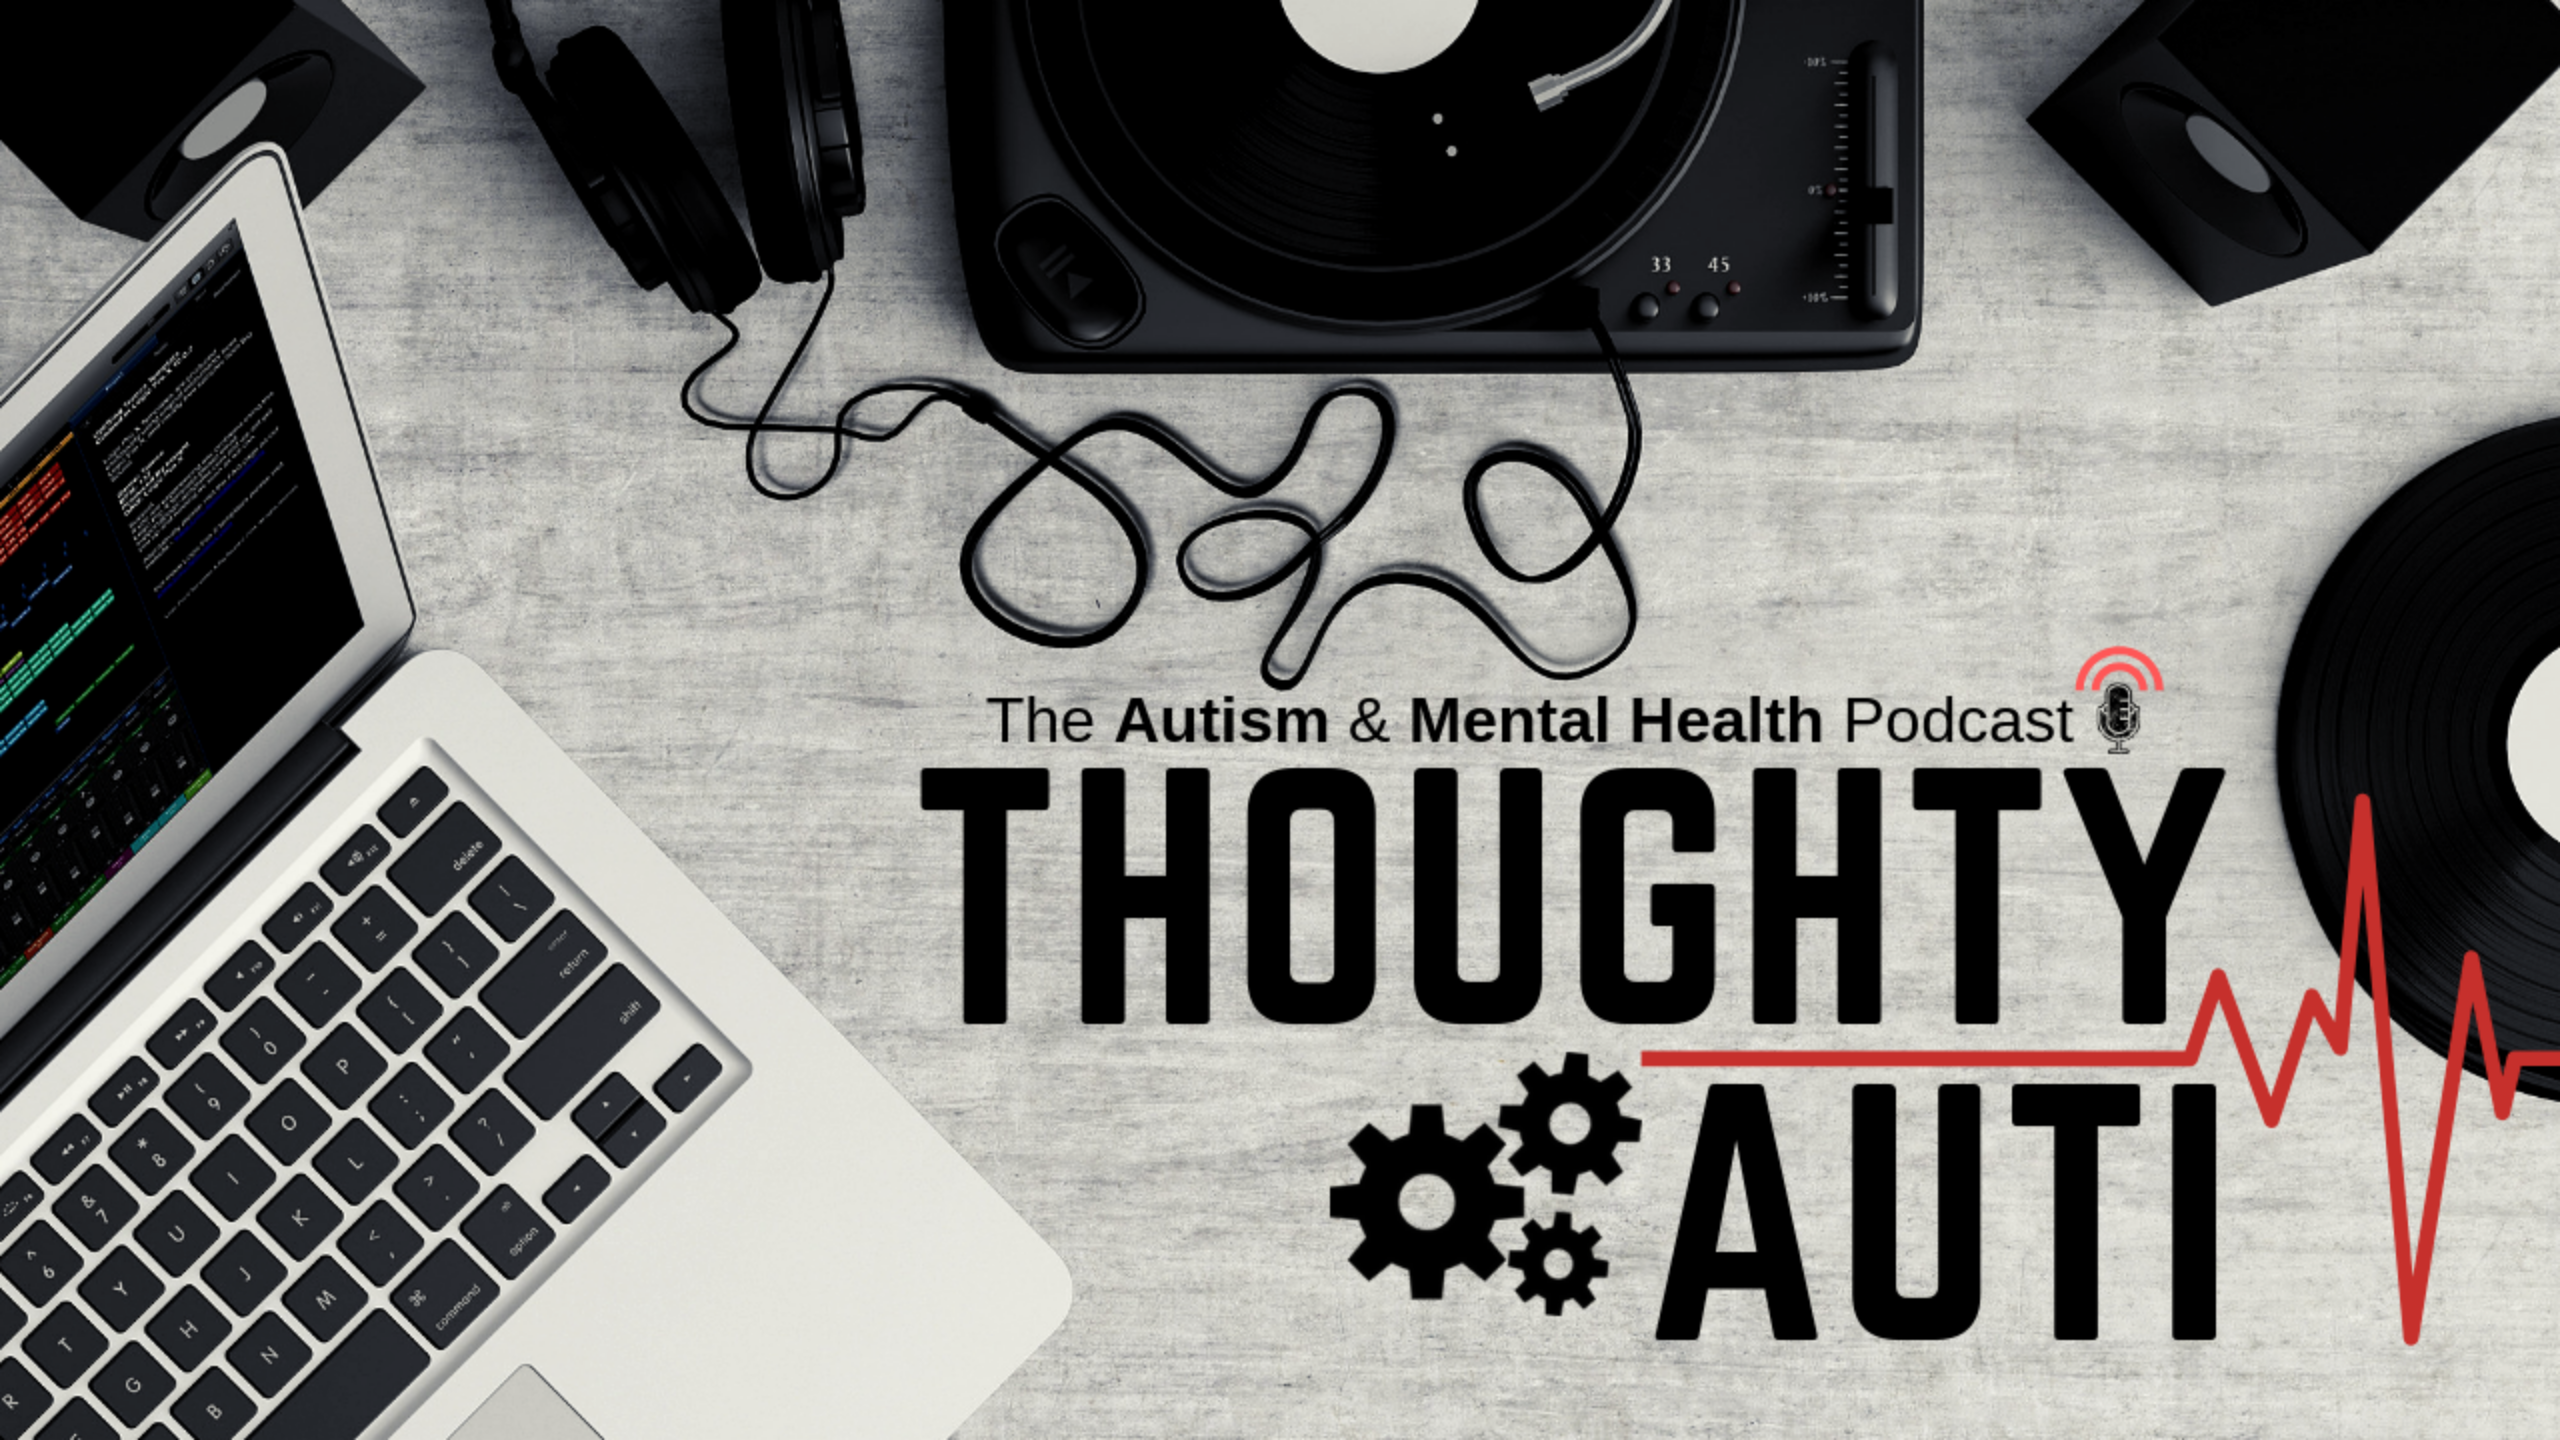 Thoughty Auti Podcast - Autism Podcast